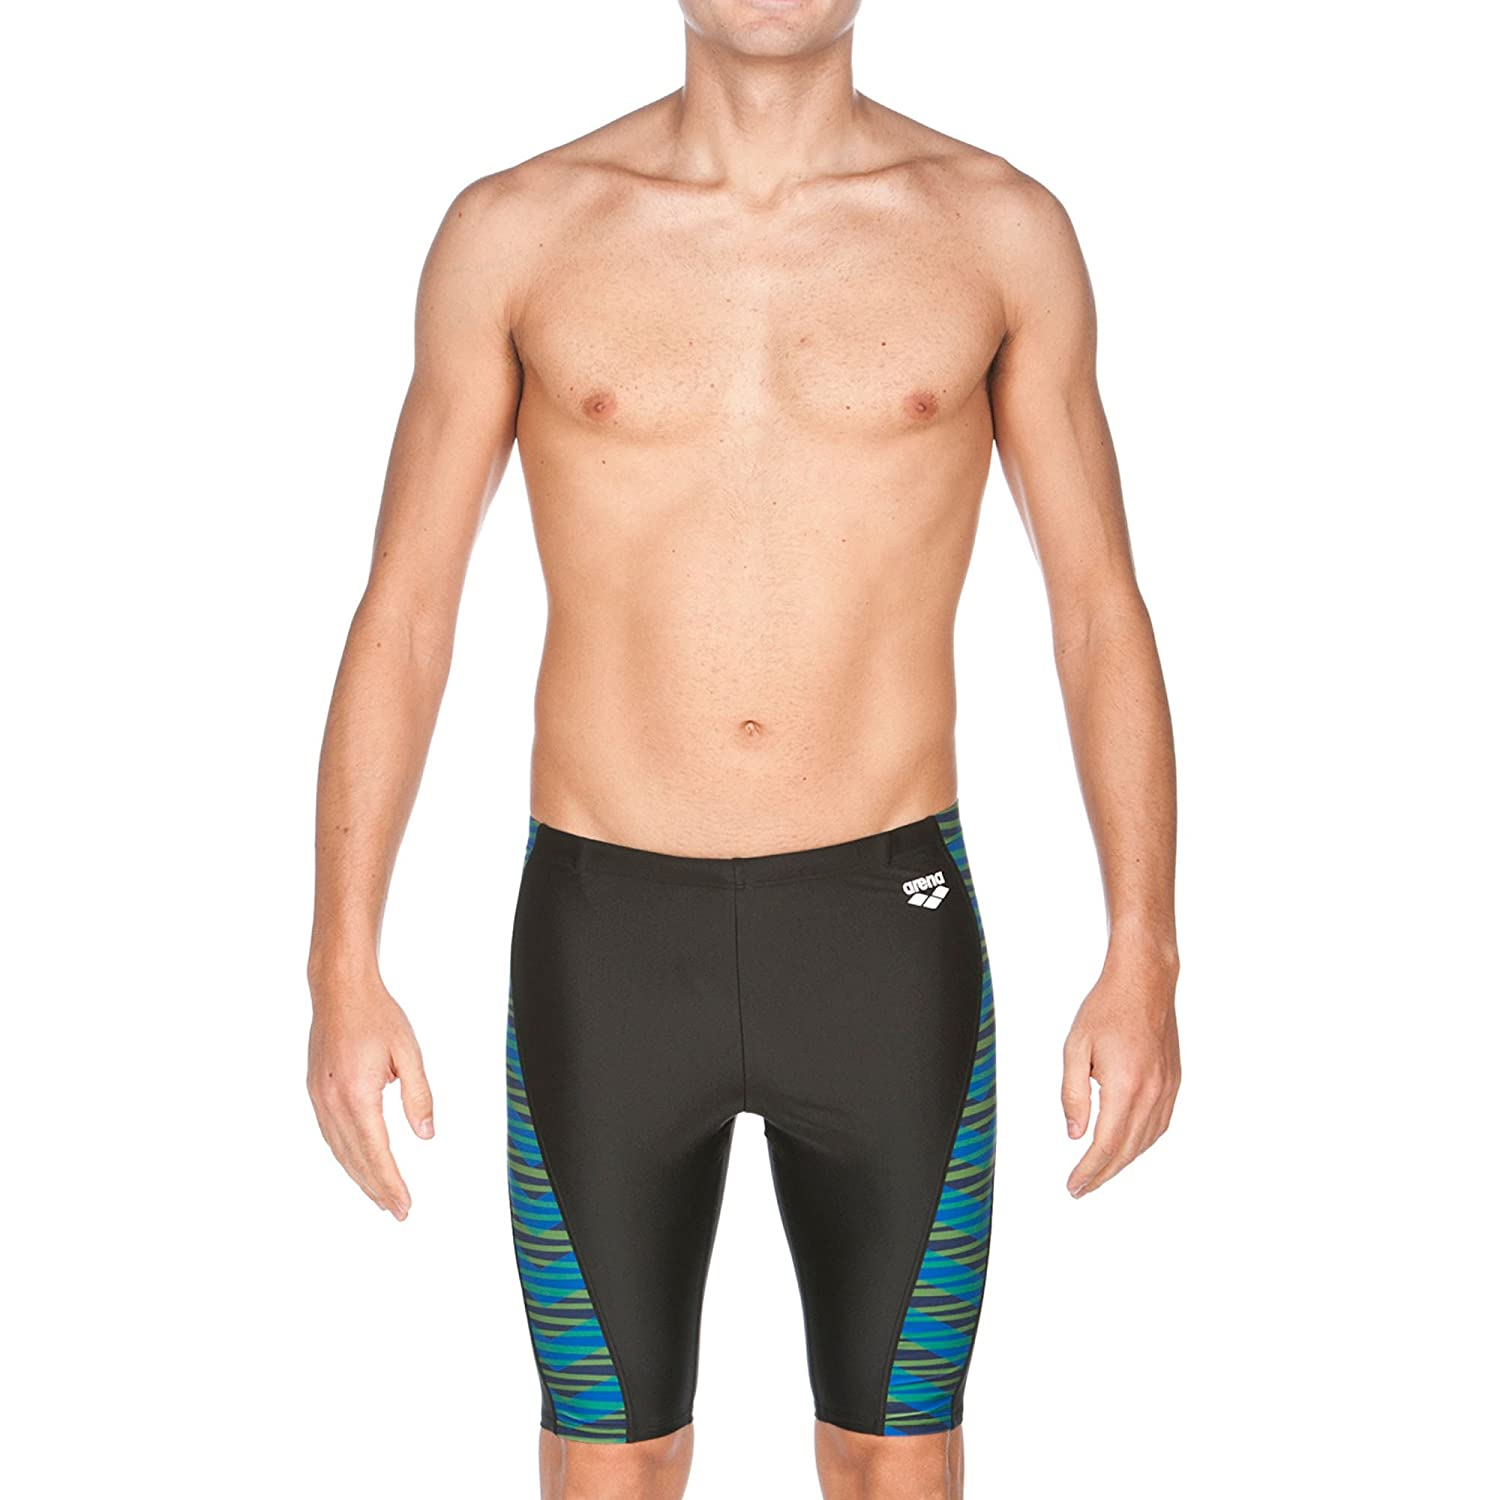 Arena Swim 2 a856メンズmimeticパネルJammer B0718XJ1TJ Black,danube_blue,multi 38 38|Black,danube_blue,multi